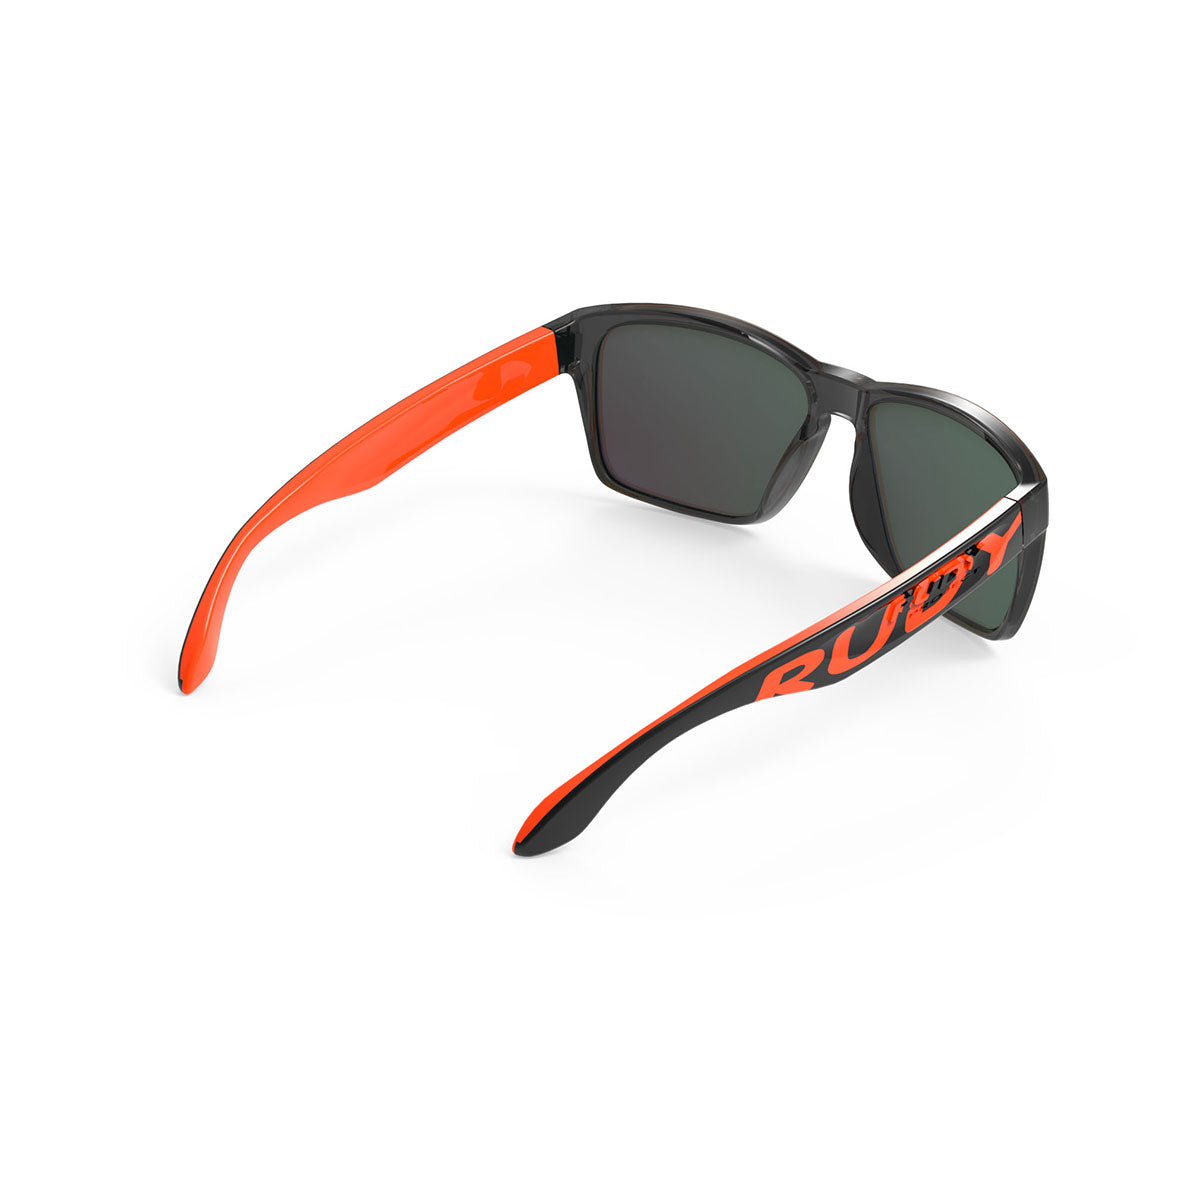 Rudy Project - Spinhawk - frame color: Crystal Ash Orange Fluo - lens color: Multilaser orange - Bumper Color:  - photo angle: Top Back Angle Variant Hover Image